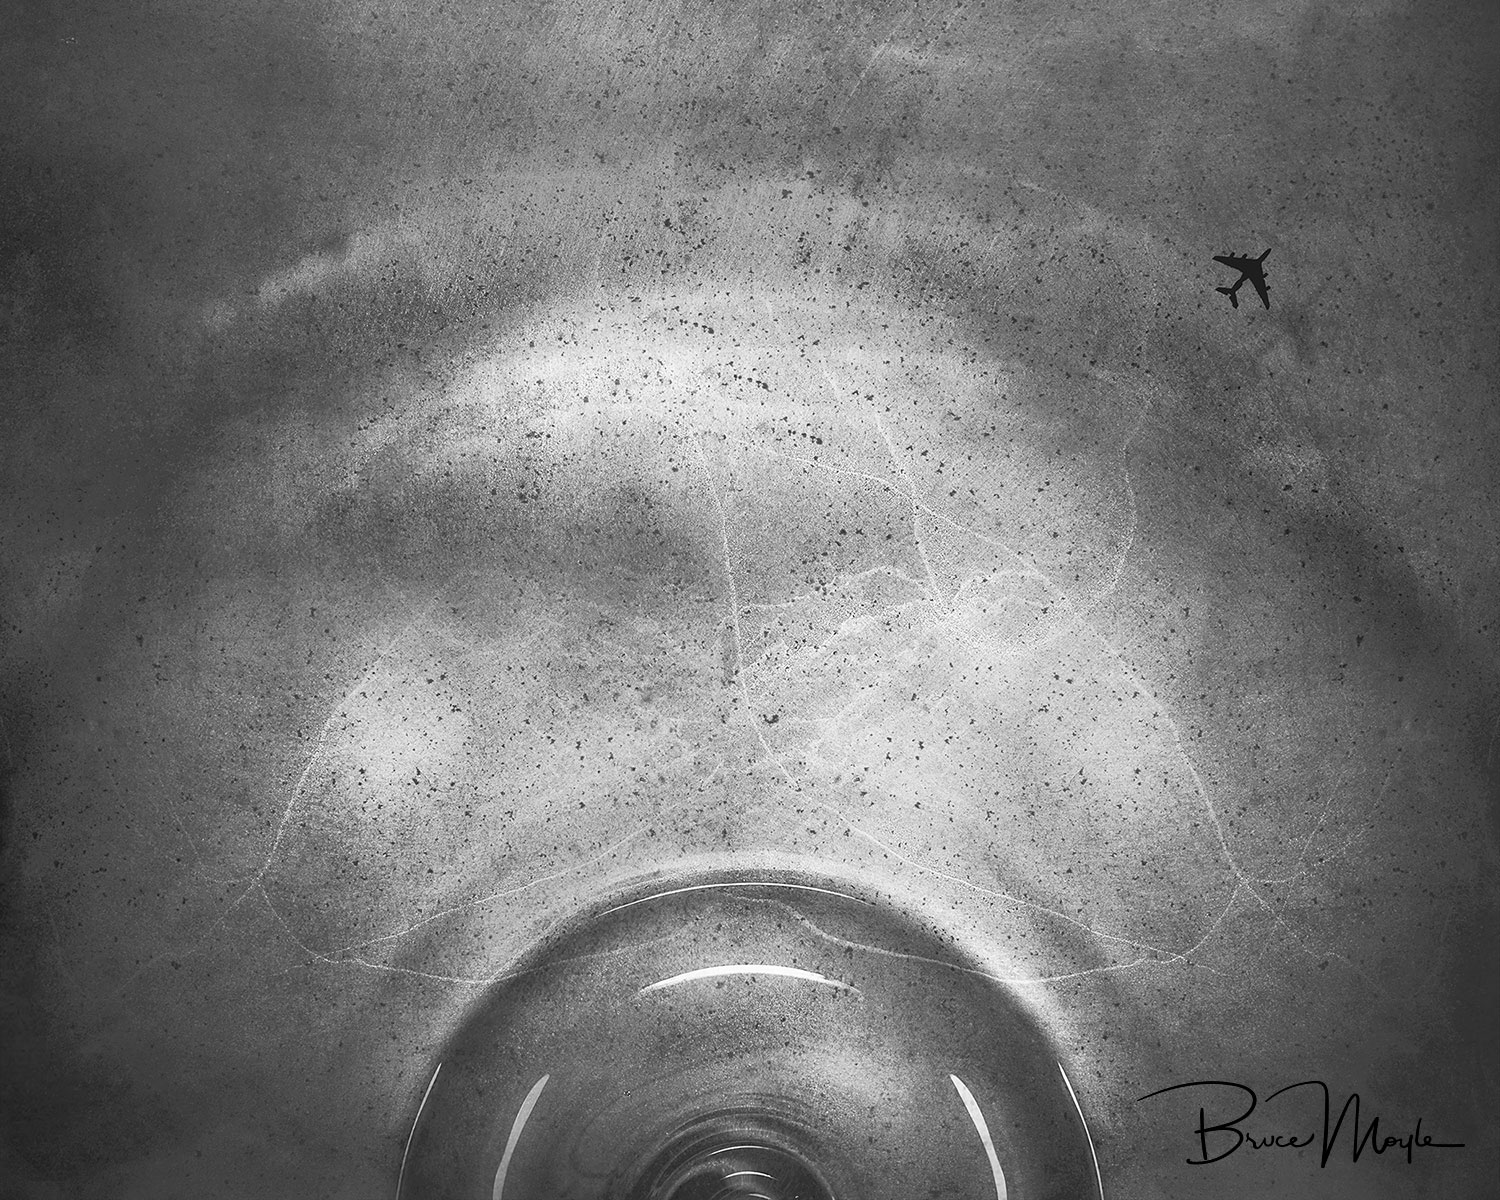 ESCAPE - 2018-Giclée print on fine art cotton ragOpen Edition-Signed-Certificate of AuthenticityFramed 75 x 65 cmTo weather the storm, sometimes we just need to be slightly ahead of the bubble.Image is a mix of macro and telephoto captures, processed to feel more like a graphite drawing than a pure photo.Thought bubbles can be amazing, stressing, genius or even depressing. The idea of packing up, getting on a plane to get away from our thoughts is something we all do. What do you do to change? I personally get out and cafe hop to hear the hustle and bustle of others and loose myself.